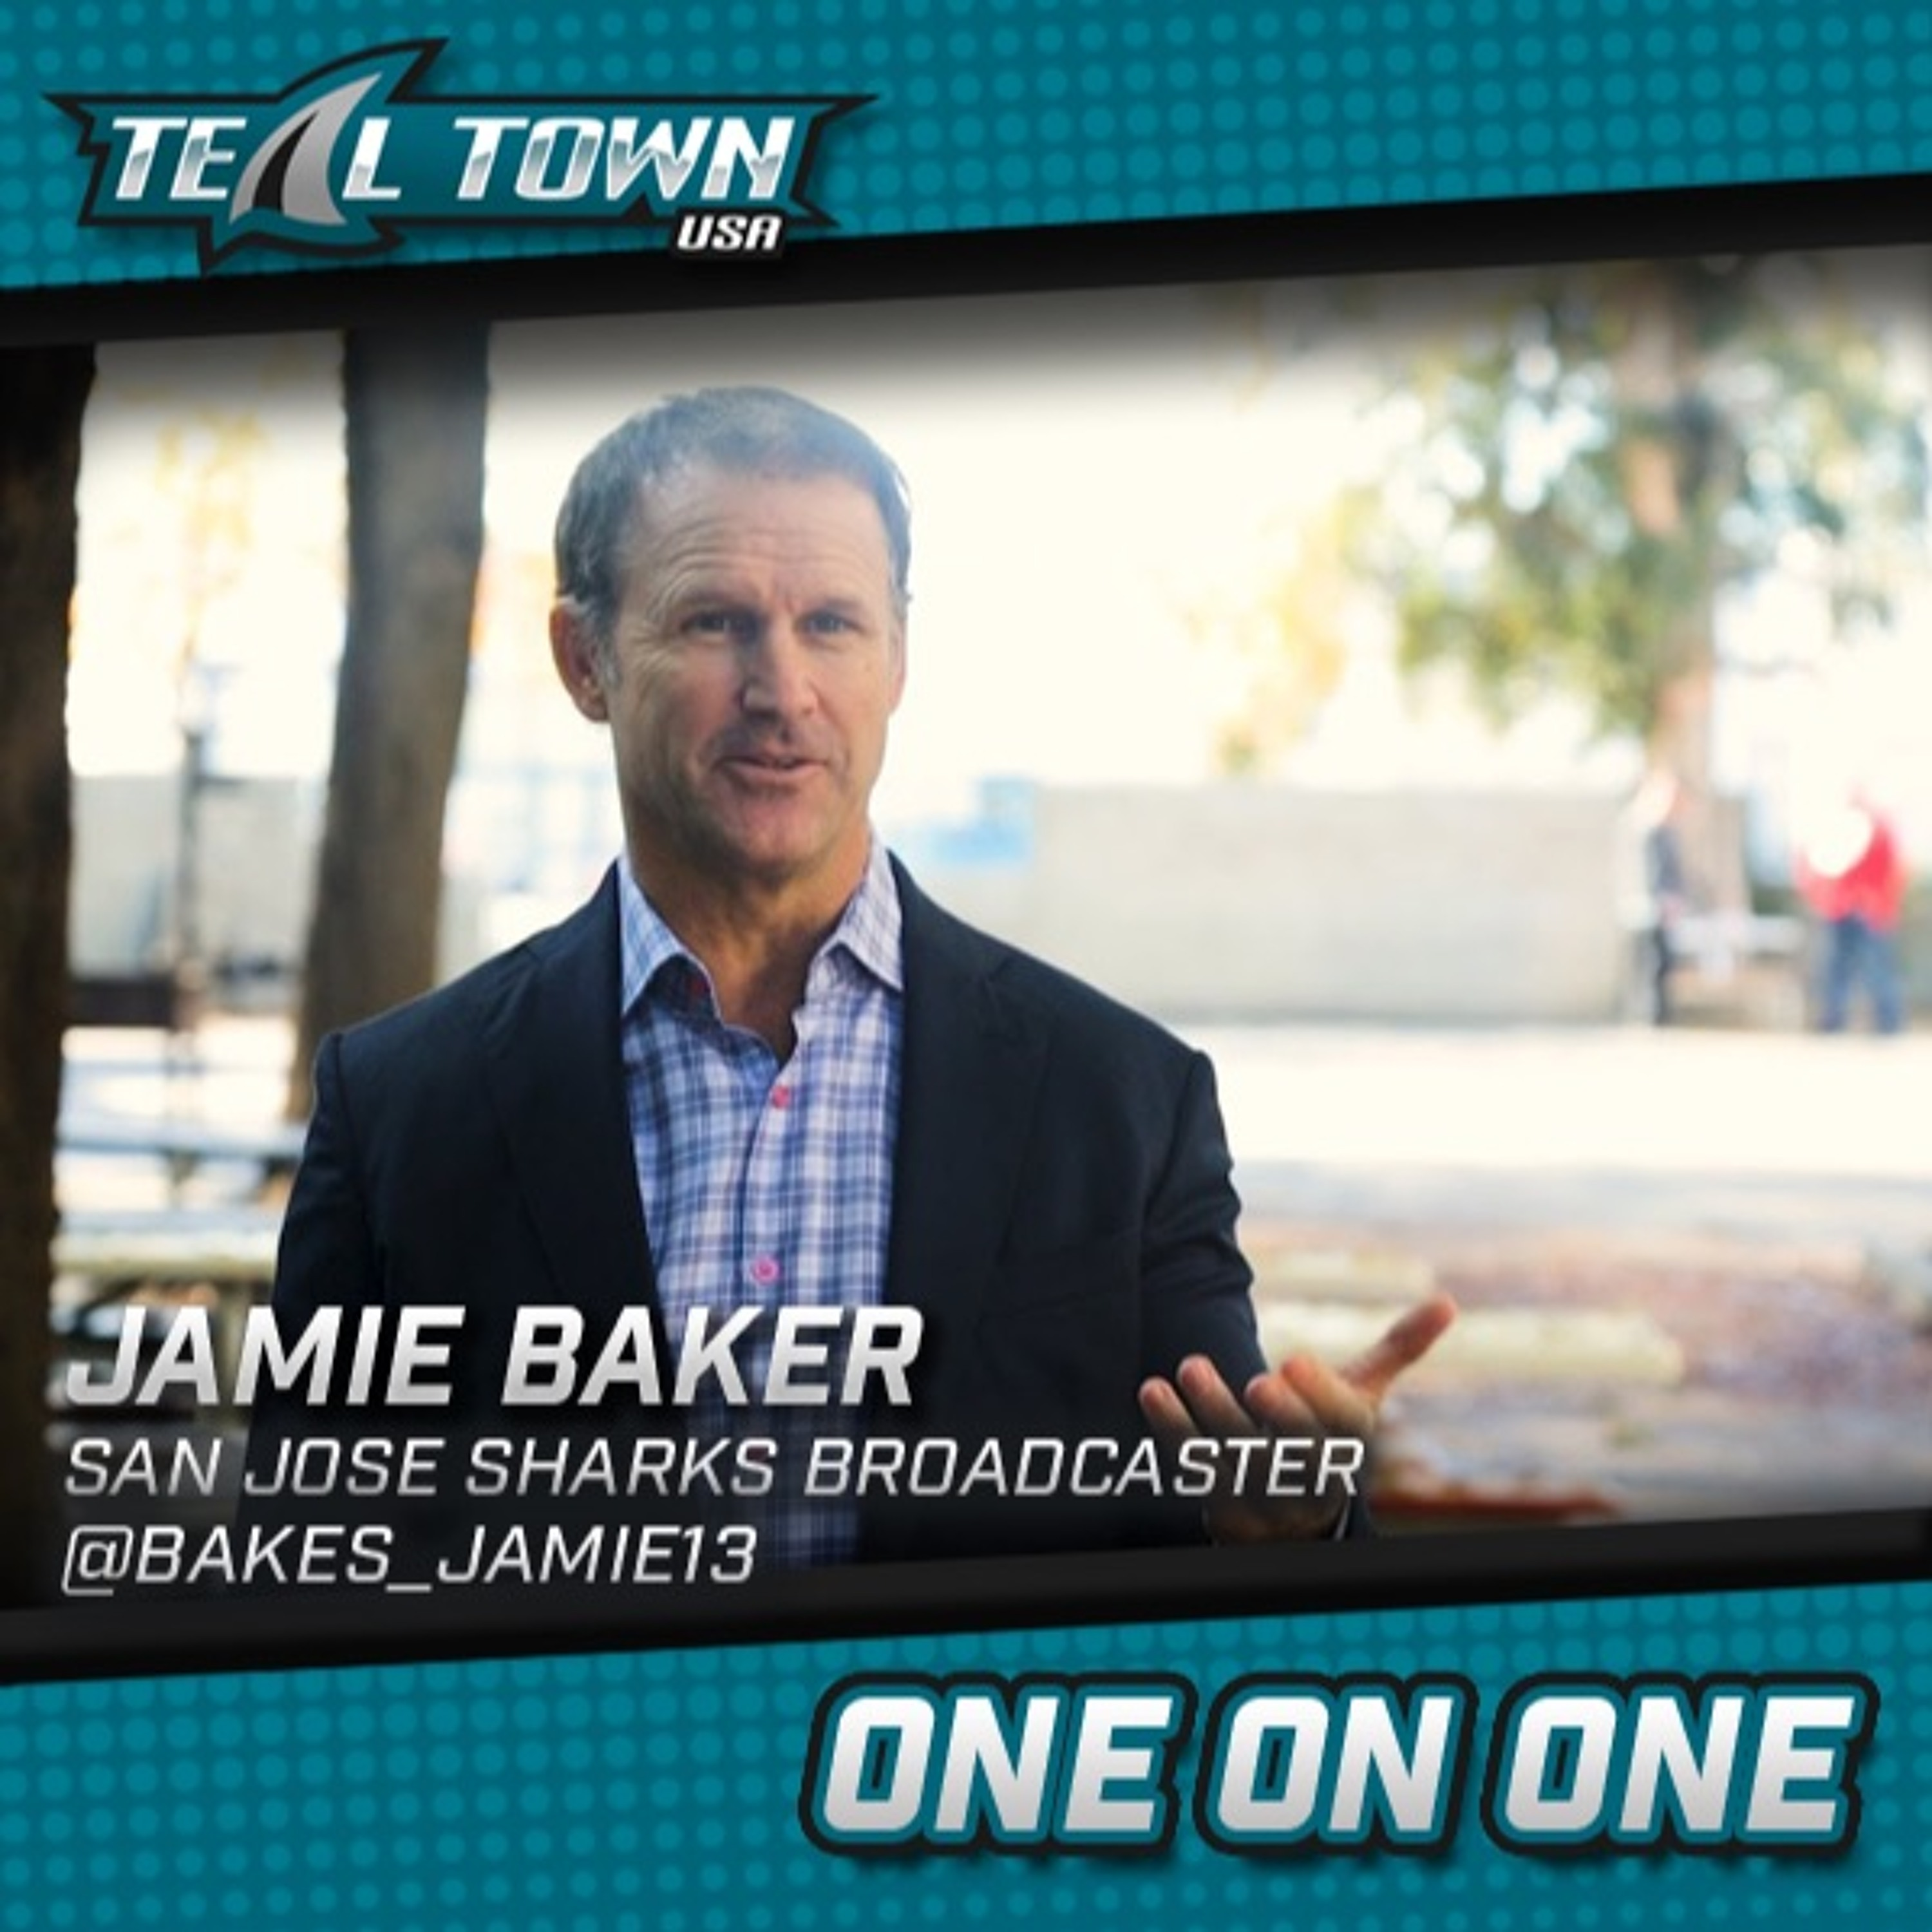 One on One with Jamie Baker - San Jose Sharks broadcaster